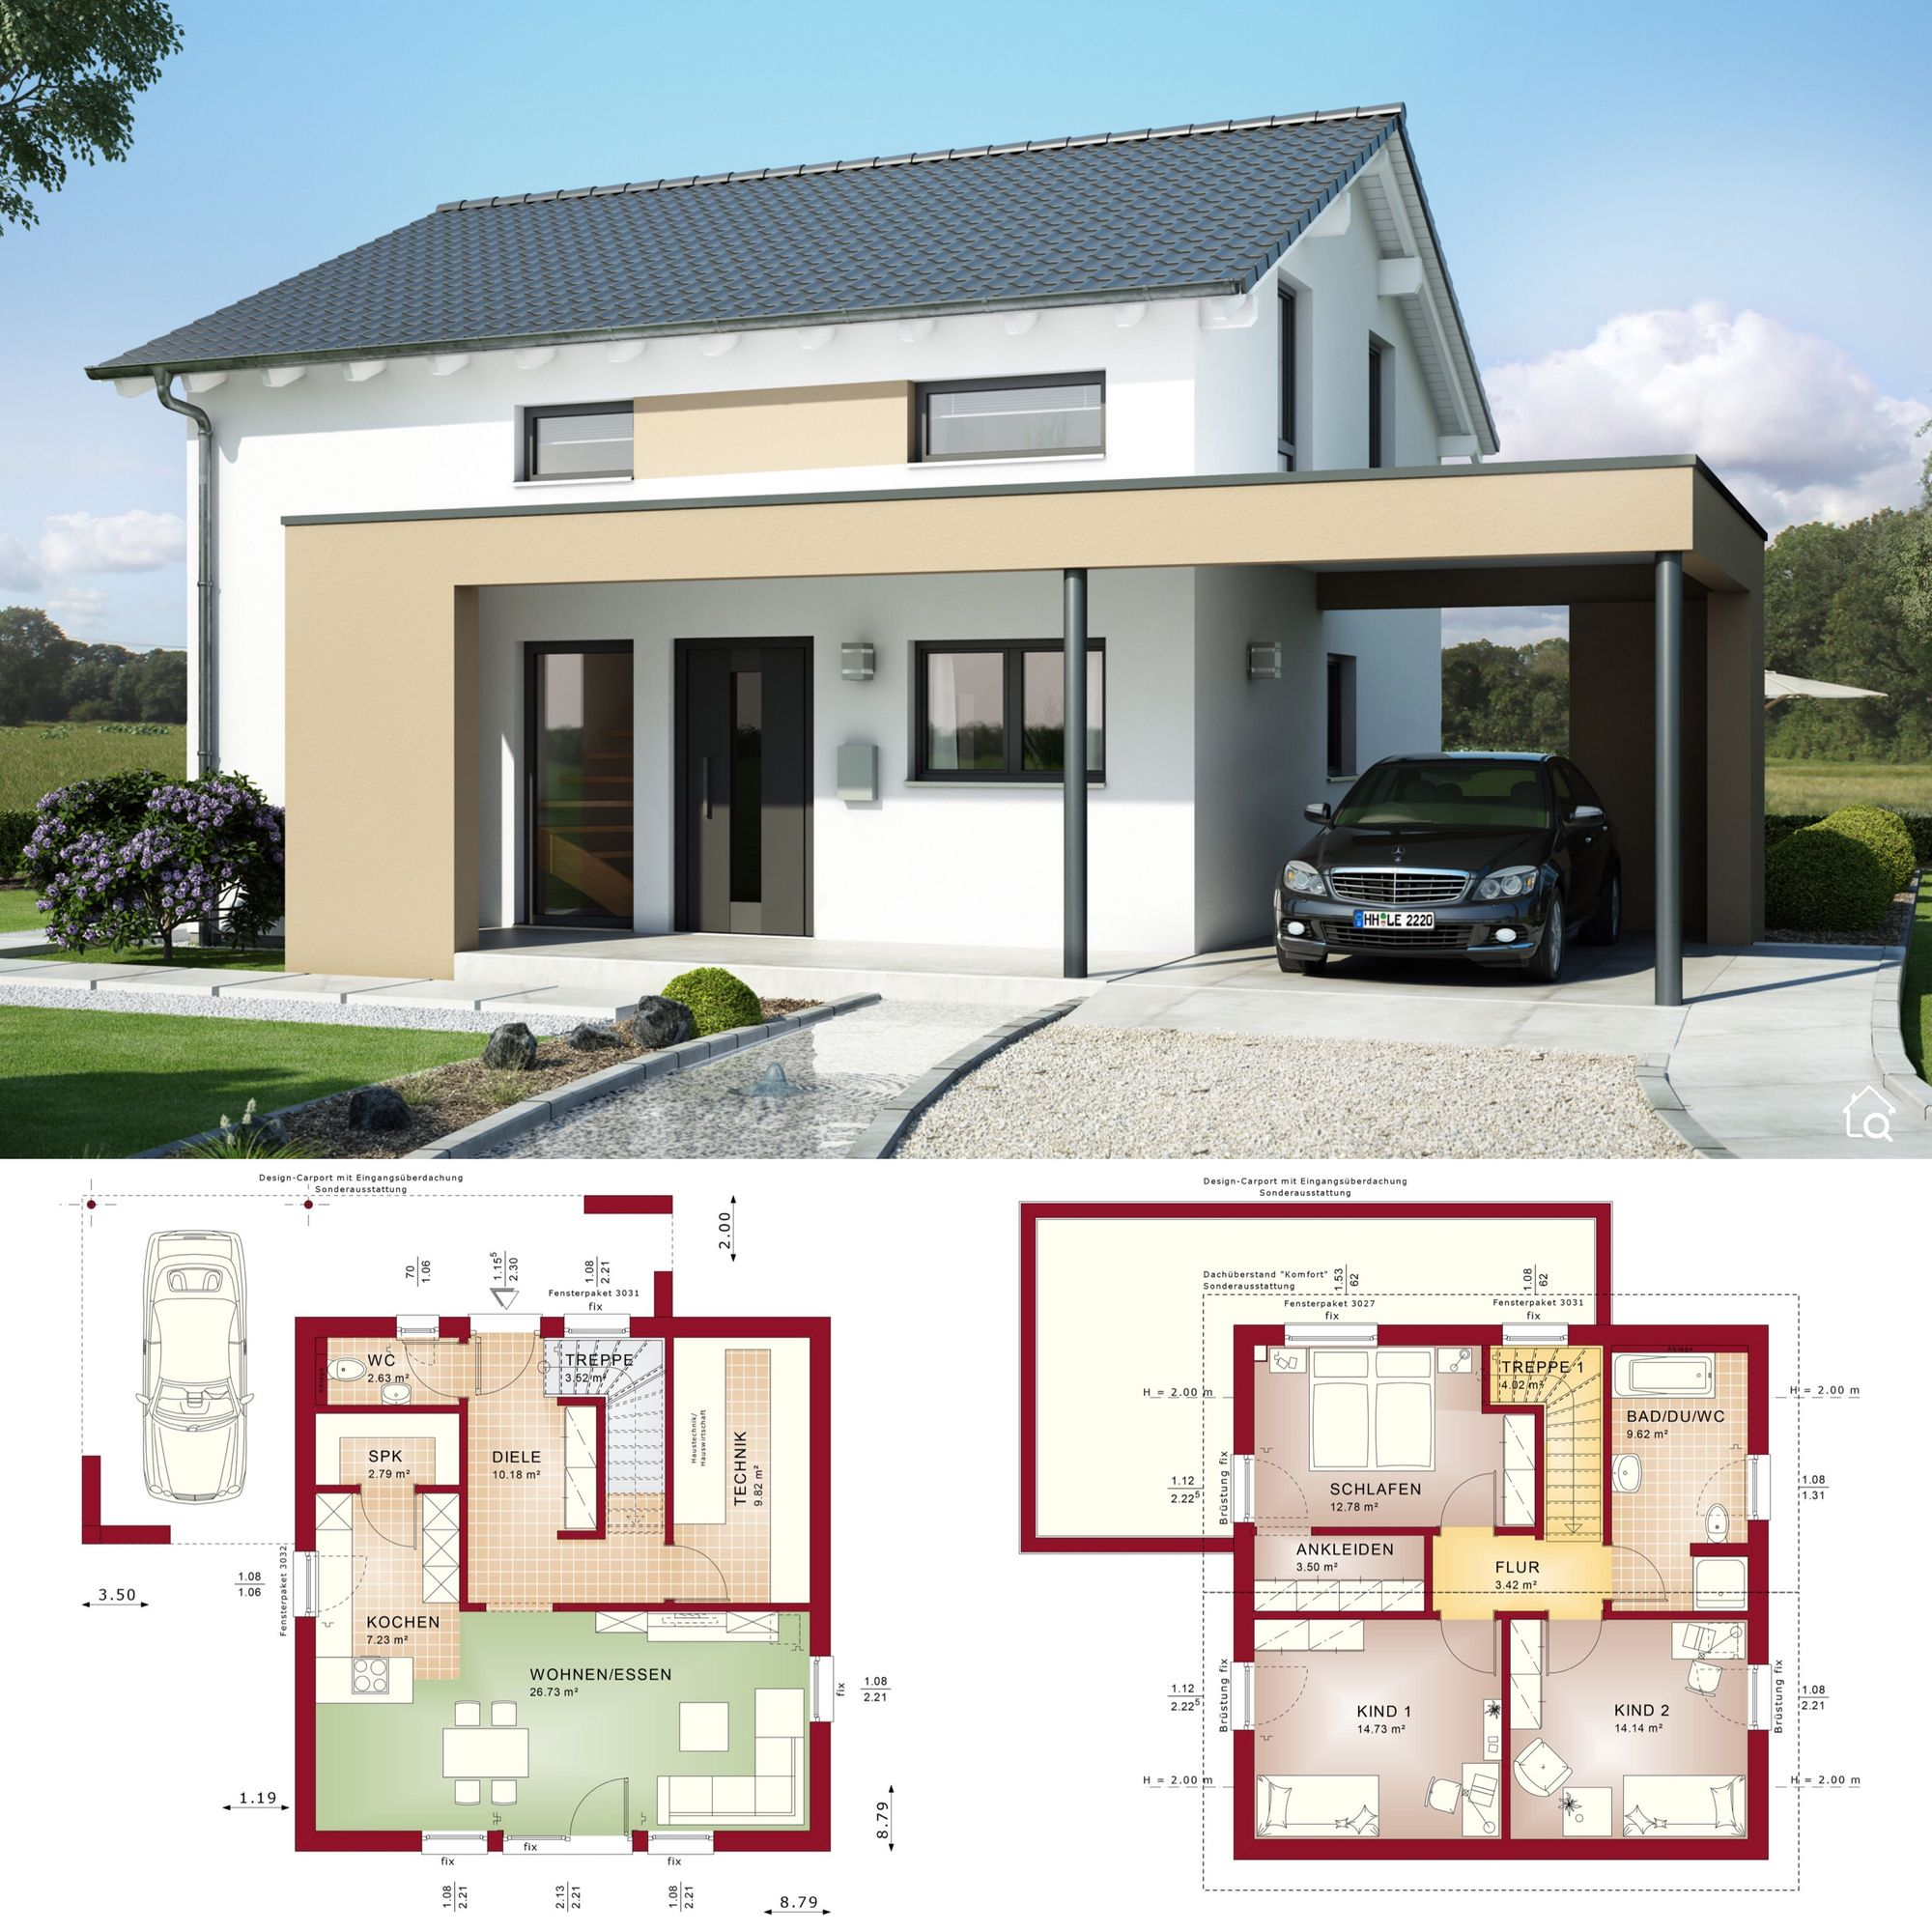 Two Floor House Plans With Carport Gable Roof Modern Contemporary European Architecture Design In 2020 Haus Grundriss Haus Modernes Haus